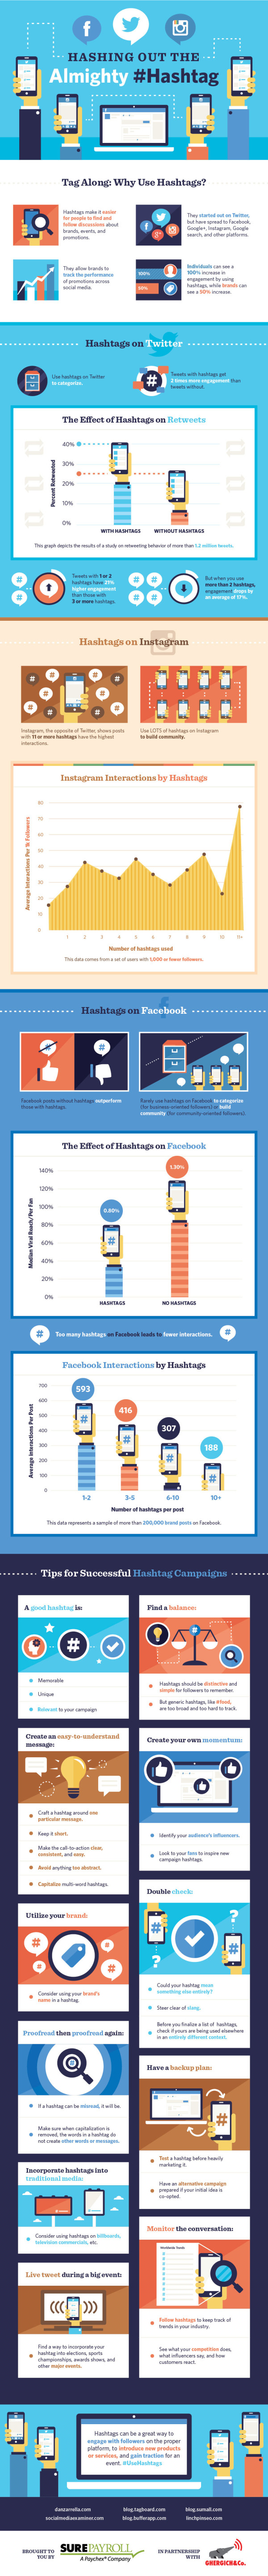 why-use-hashtags